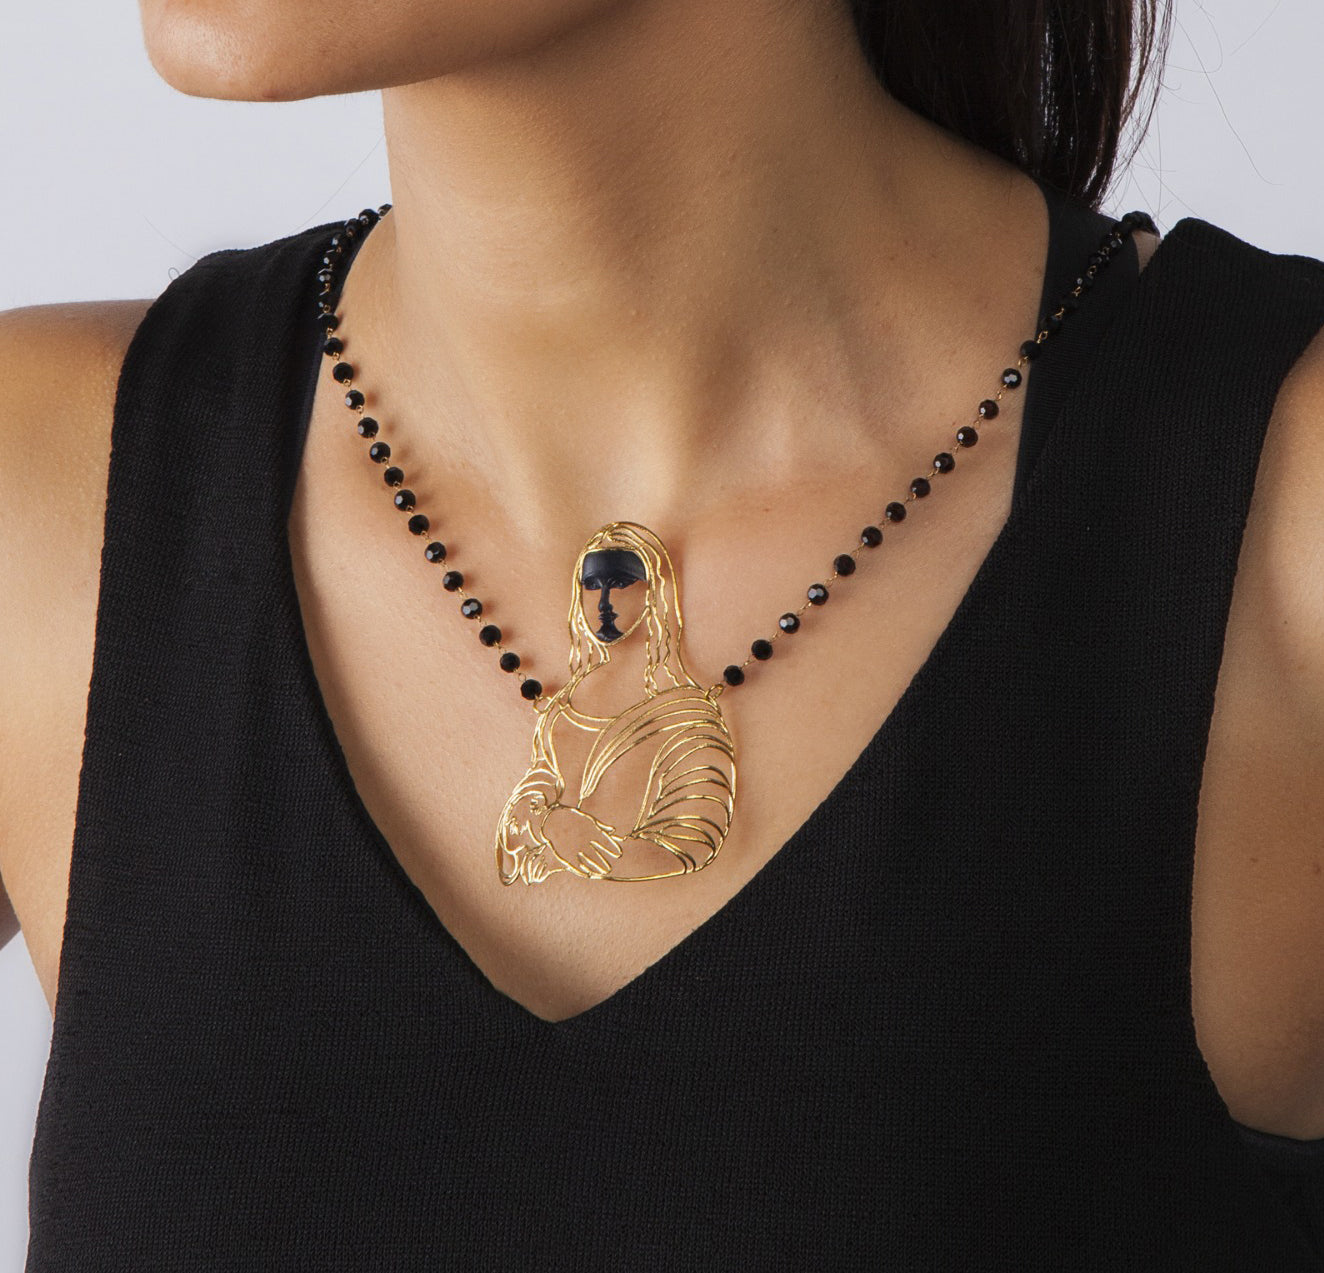 Mona Lisa pendant on woman